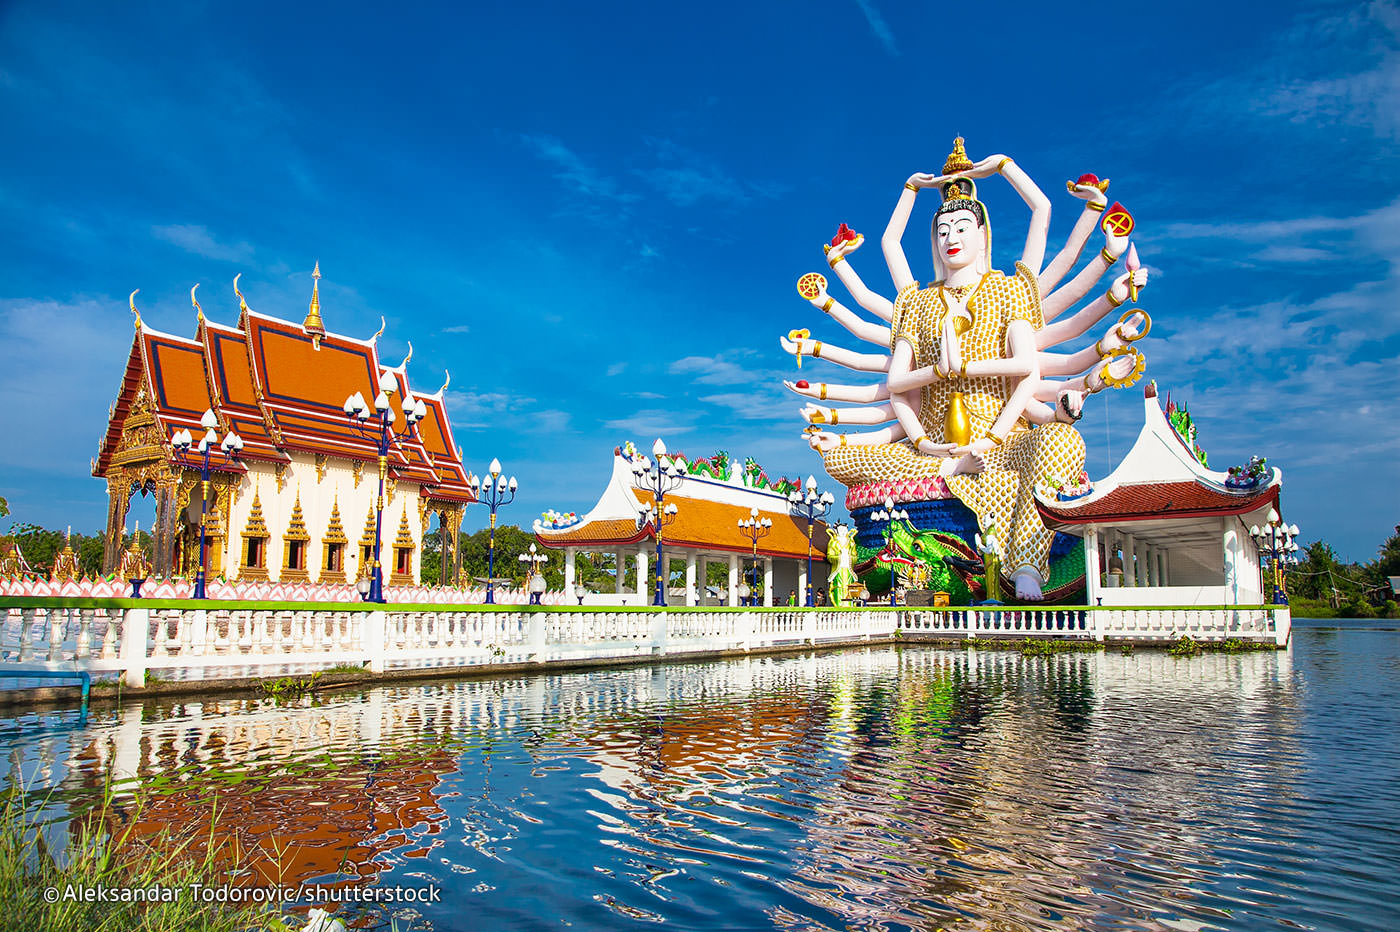 The Wat Plai Laem temple